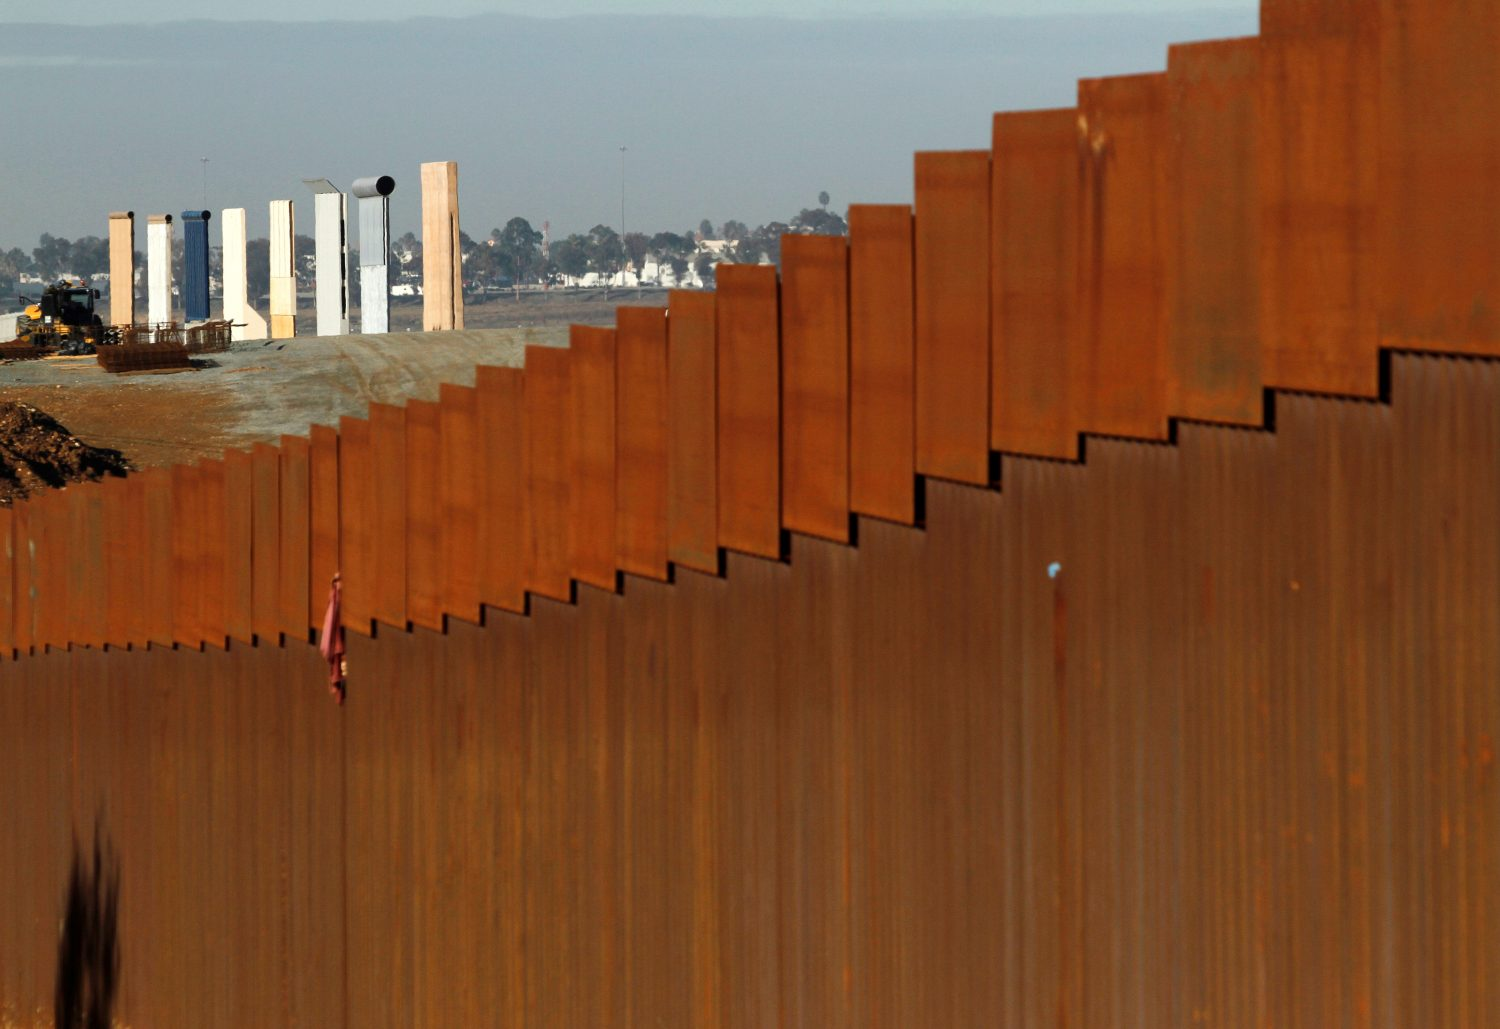 FILE PHOTO: The prototypes for U.S. President Donald Trump's border wall are seen behind the border fence between Mexico and the United States, in Tijuana, Mexico January 7, 2019. REUTERS/Jorge Duenes/File Photo